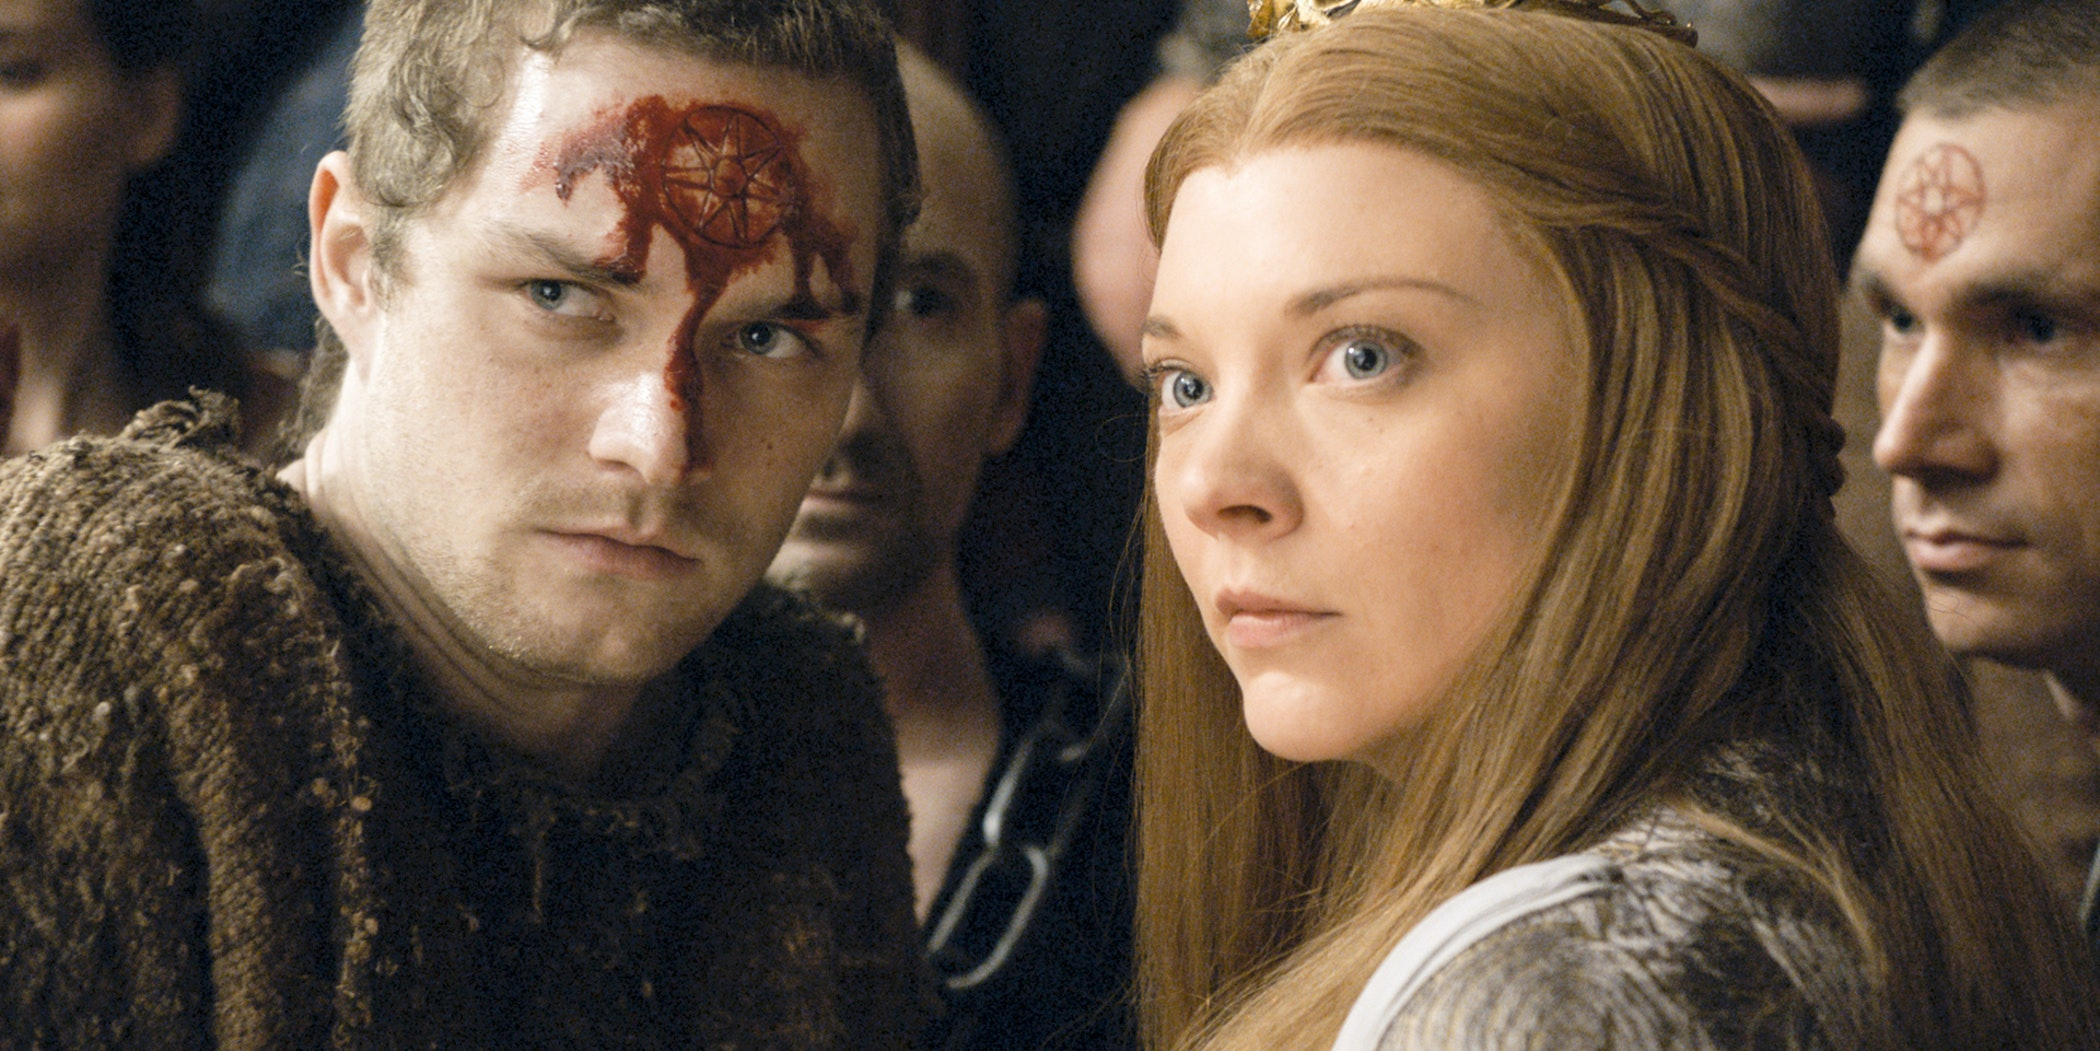 Why 'Game of Thrones' Season 6 Soaked Its Shock Value Crutch In Wildfire and Lit a Fuse